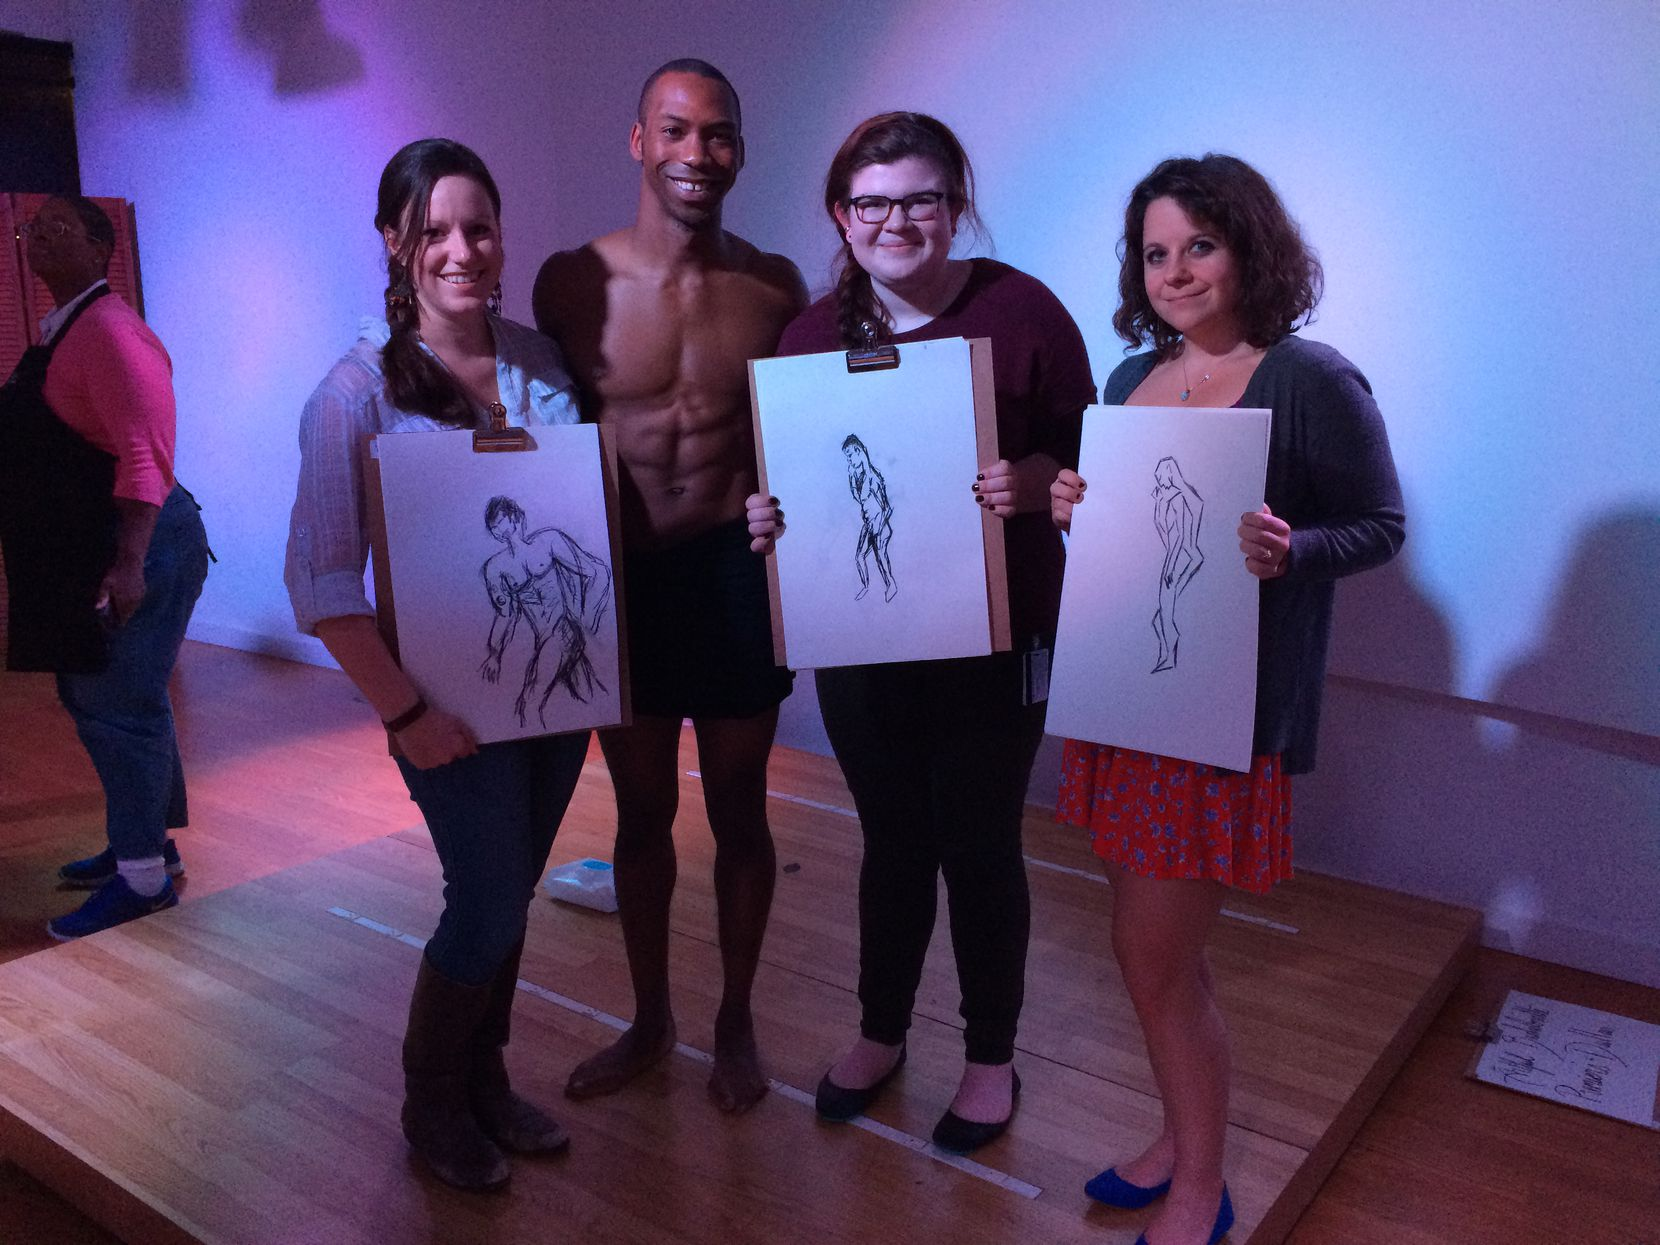 From left: Tiney Ricciardi, master male model Kenny, Hannah Wise and Brentney Hamilton.